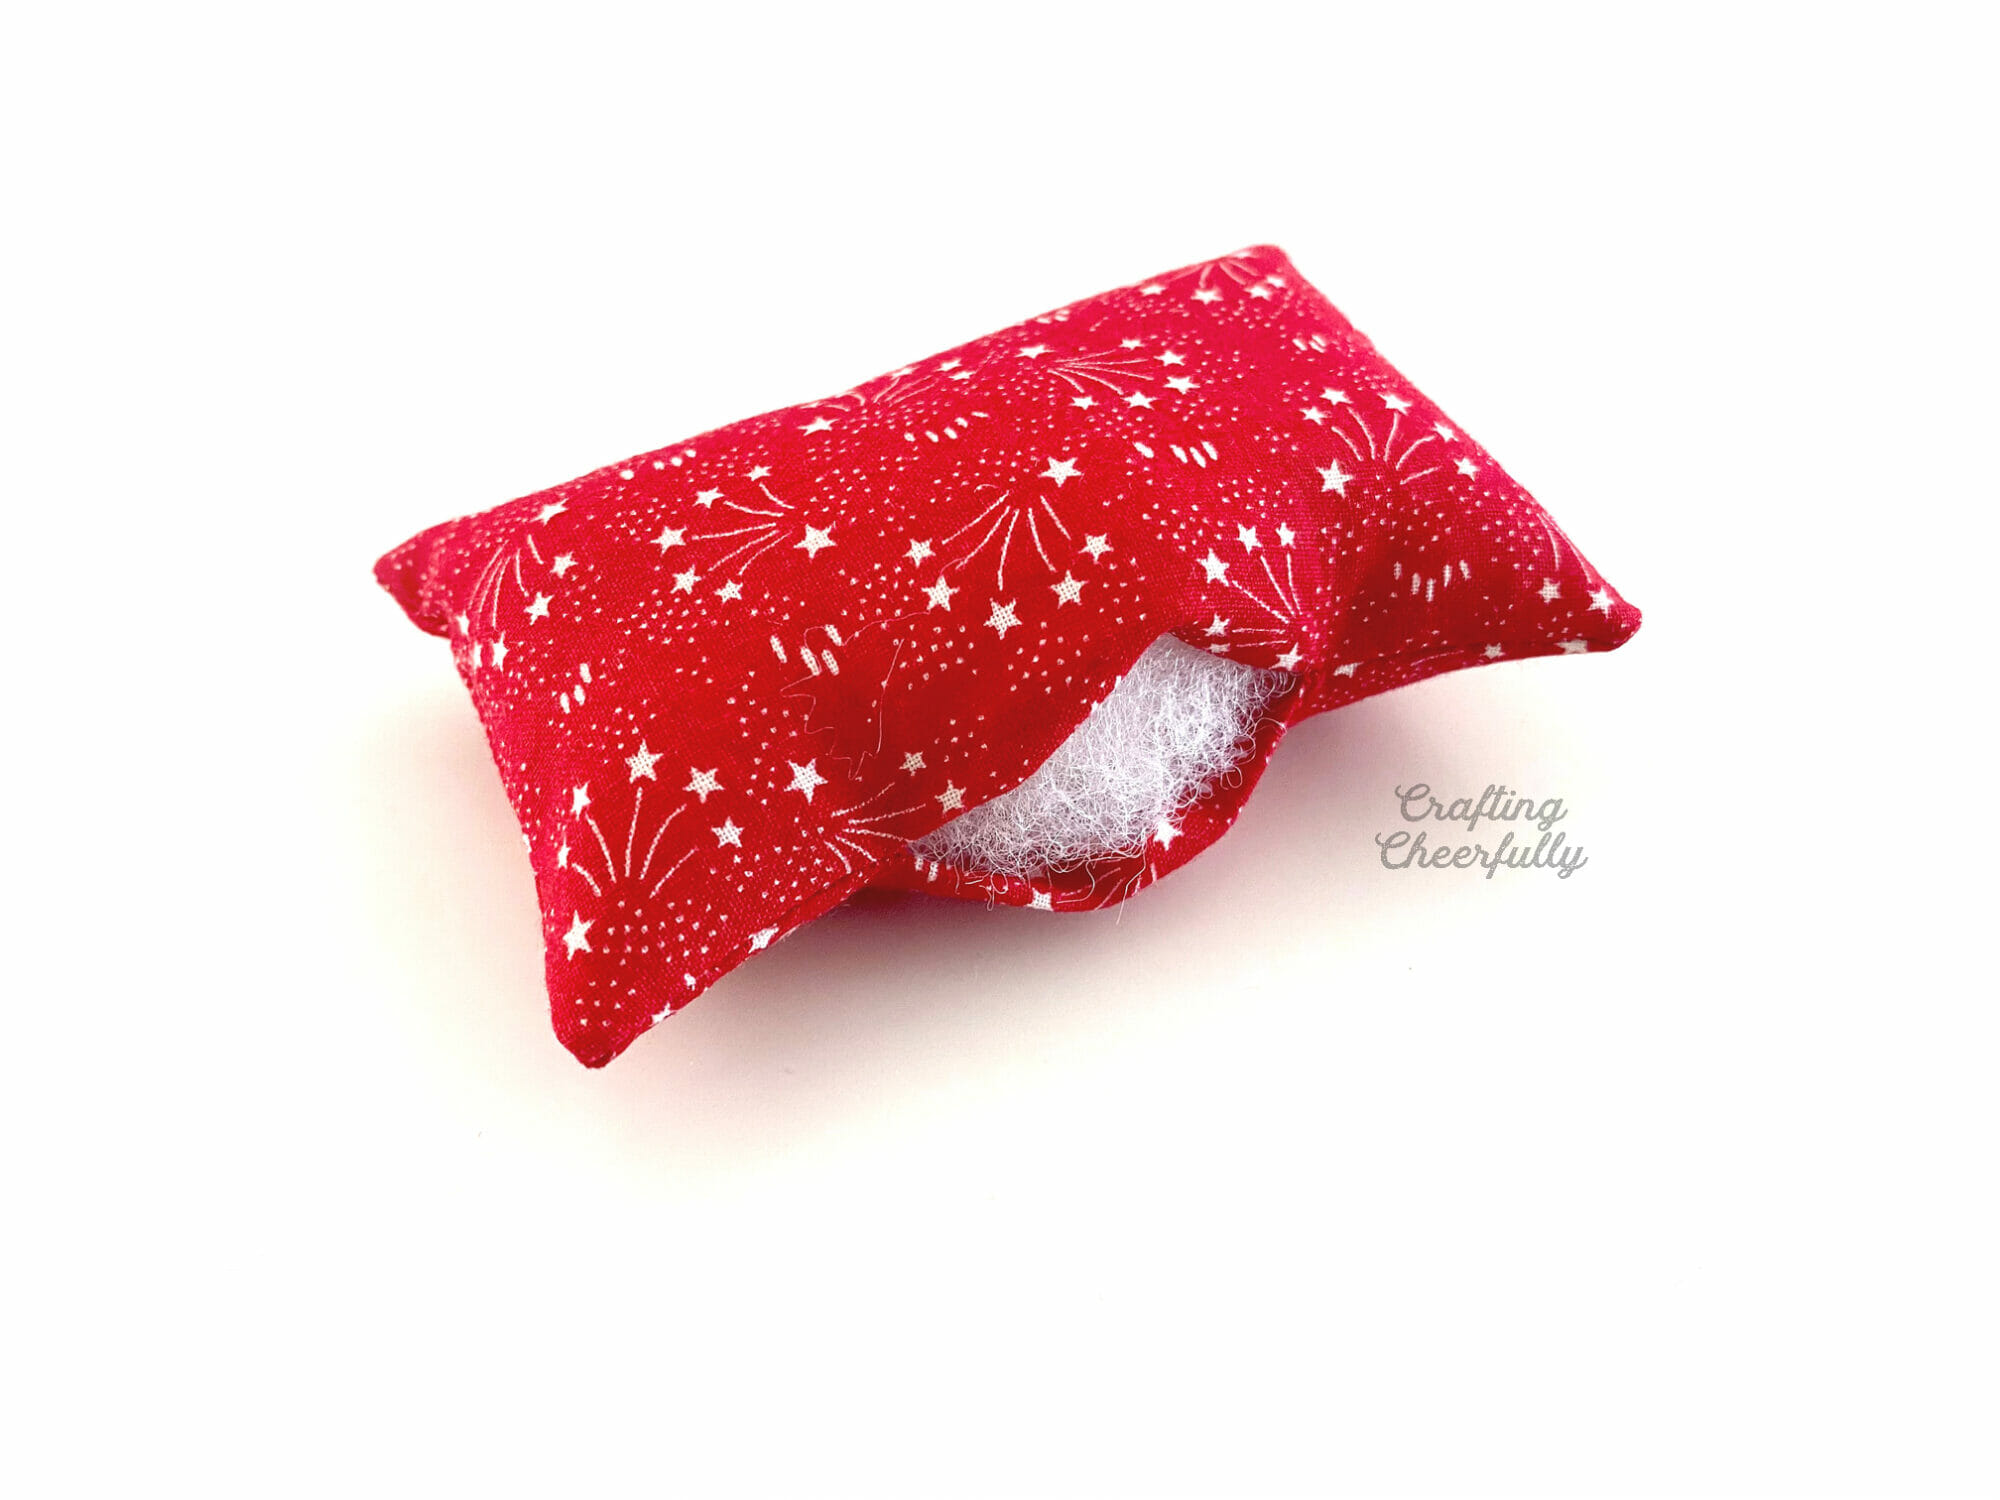 Red pillow stuffed with polyfil stuffing.